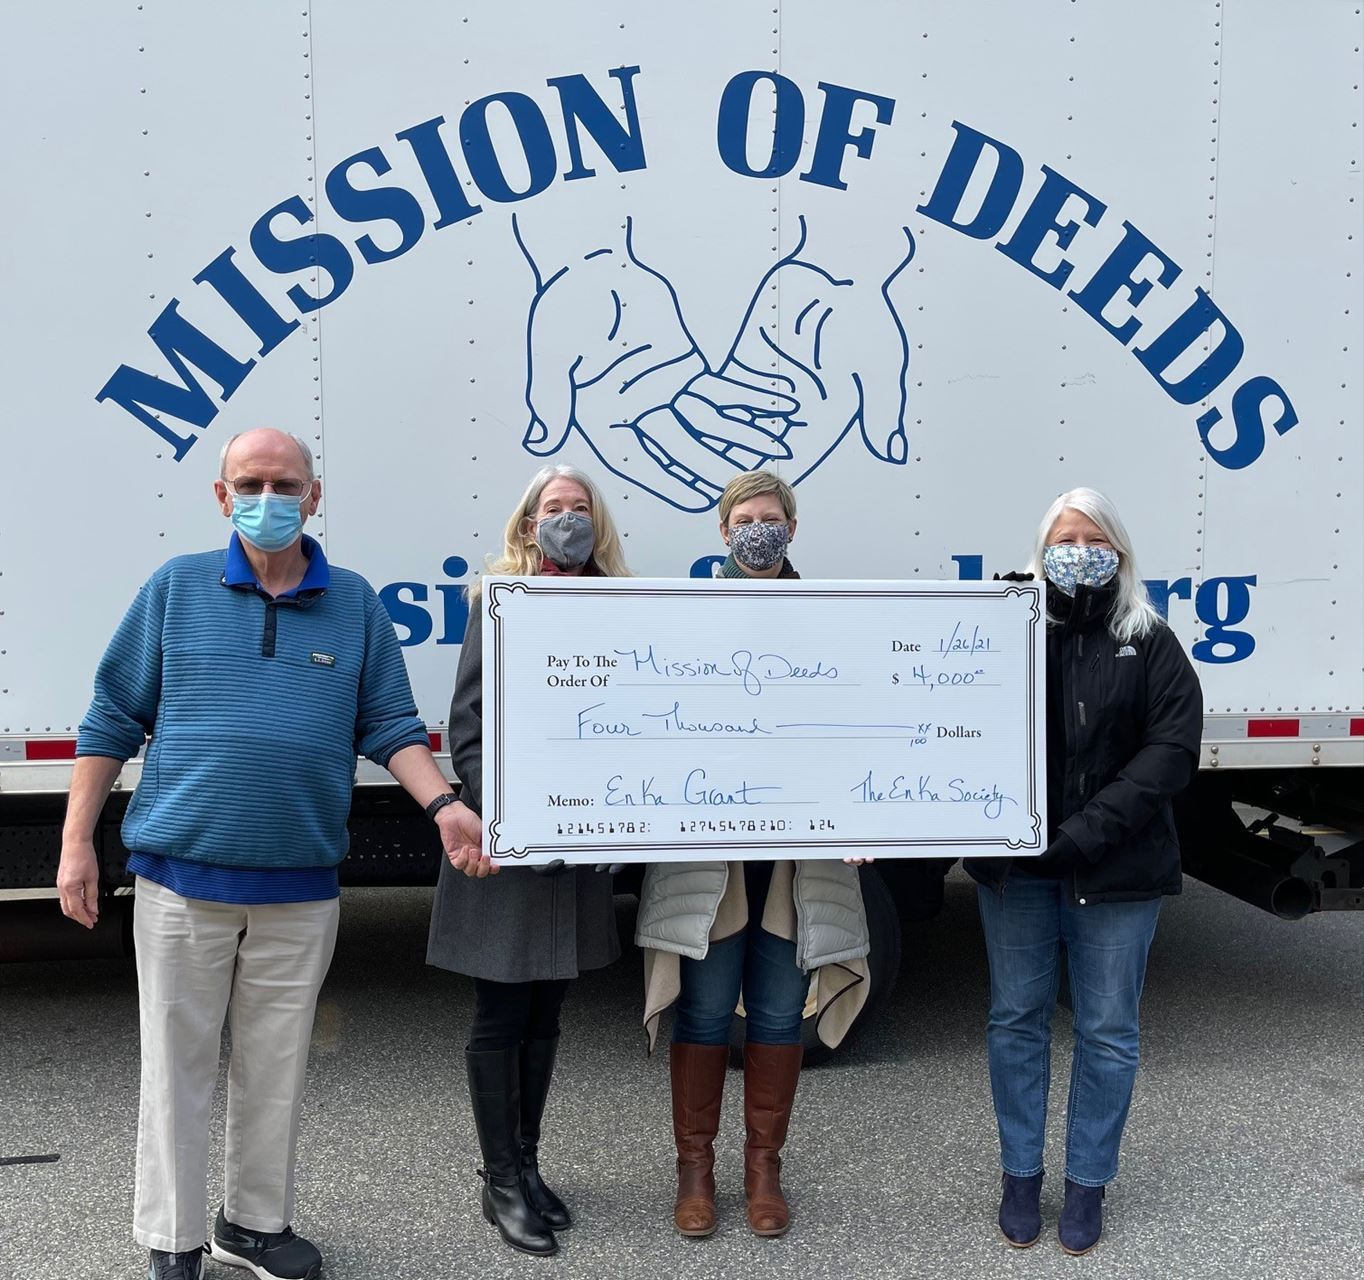 En Ka Society presents a grant to Mission of Deeds